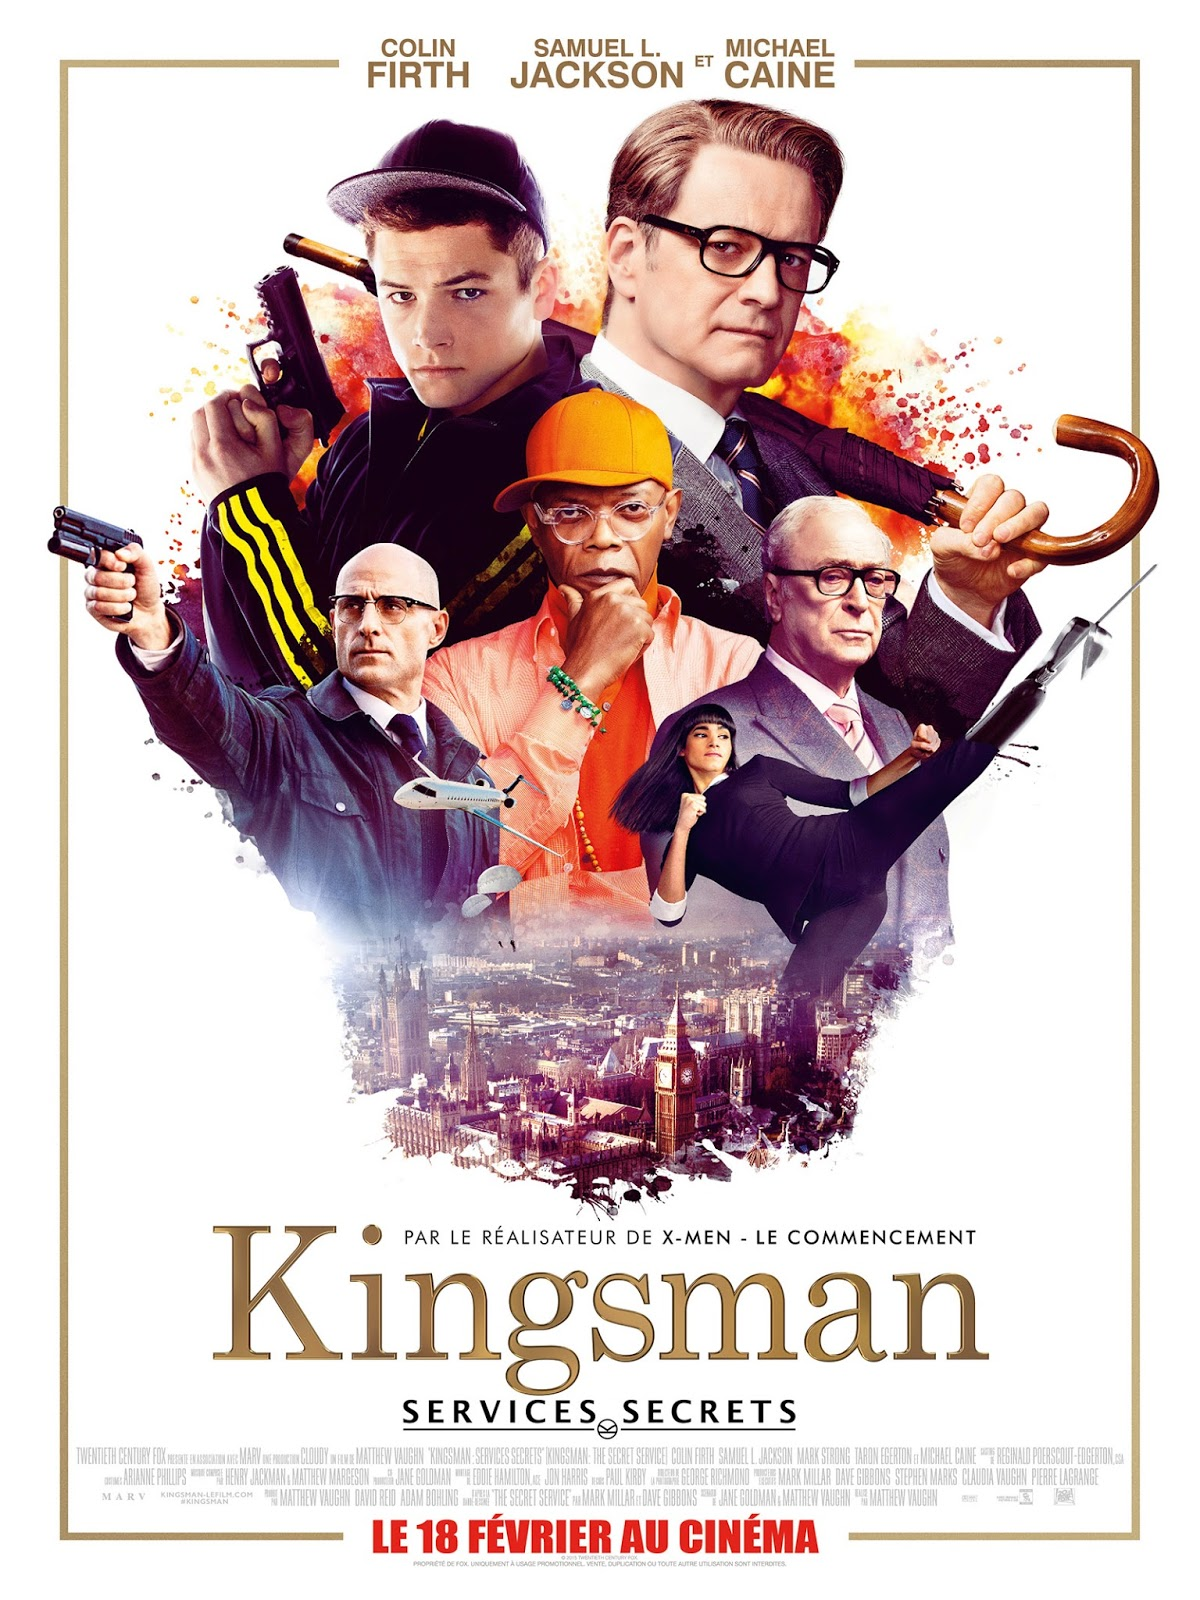 http://fuckingcinephiles.blogspot.fr/2015/02/critique-kingsman-services-secrets.html